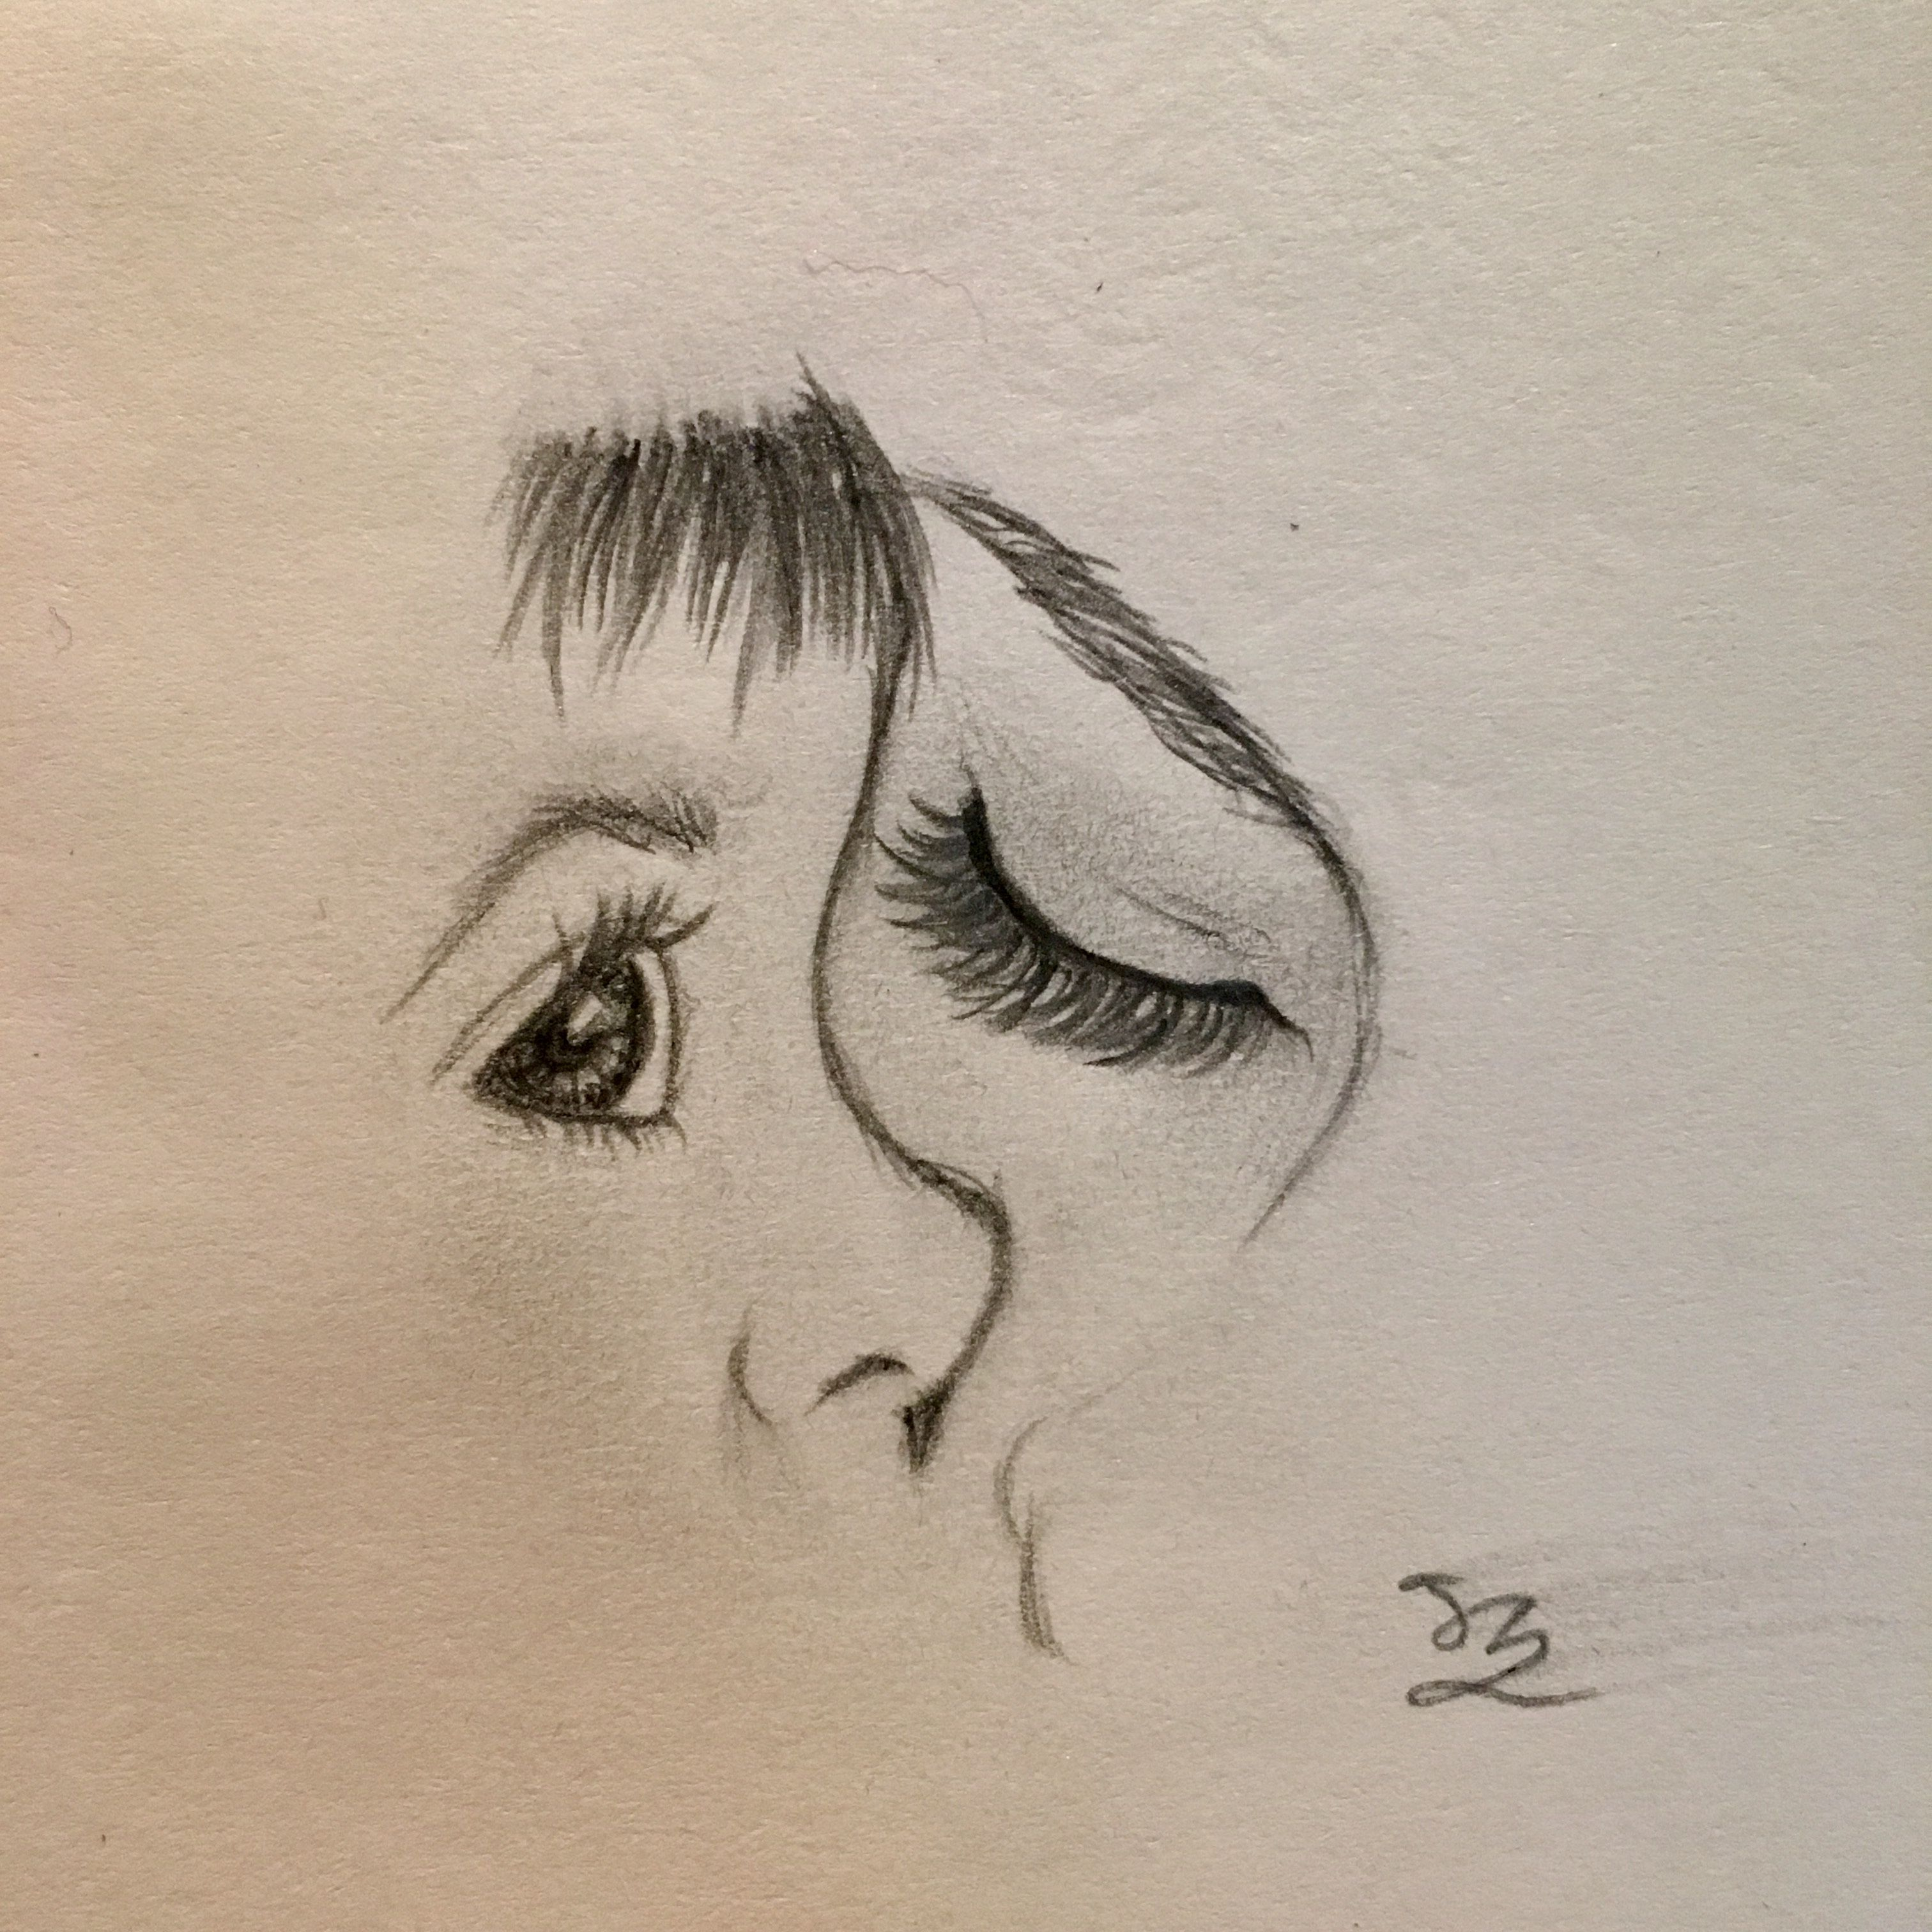 JZ Drawing* Mother Love   Sketches of love, Mothers love ...